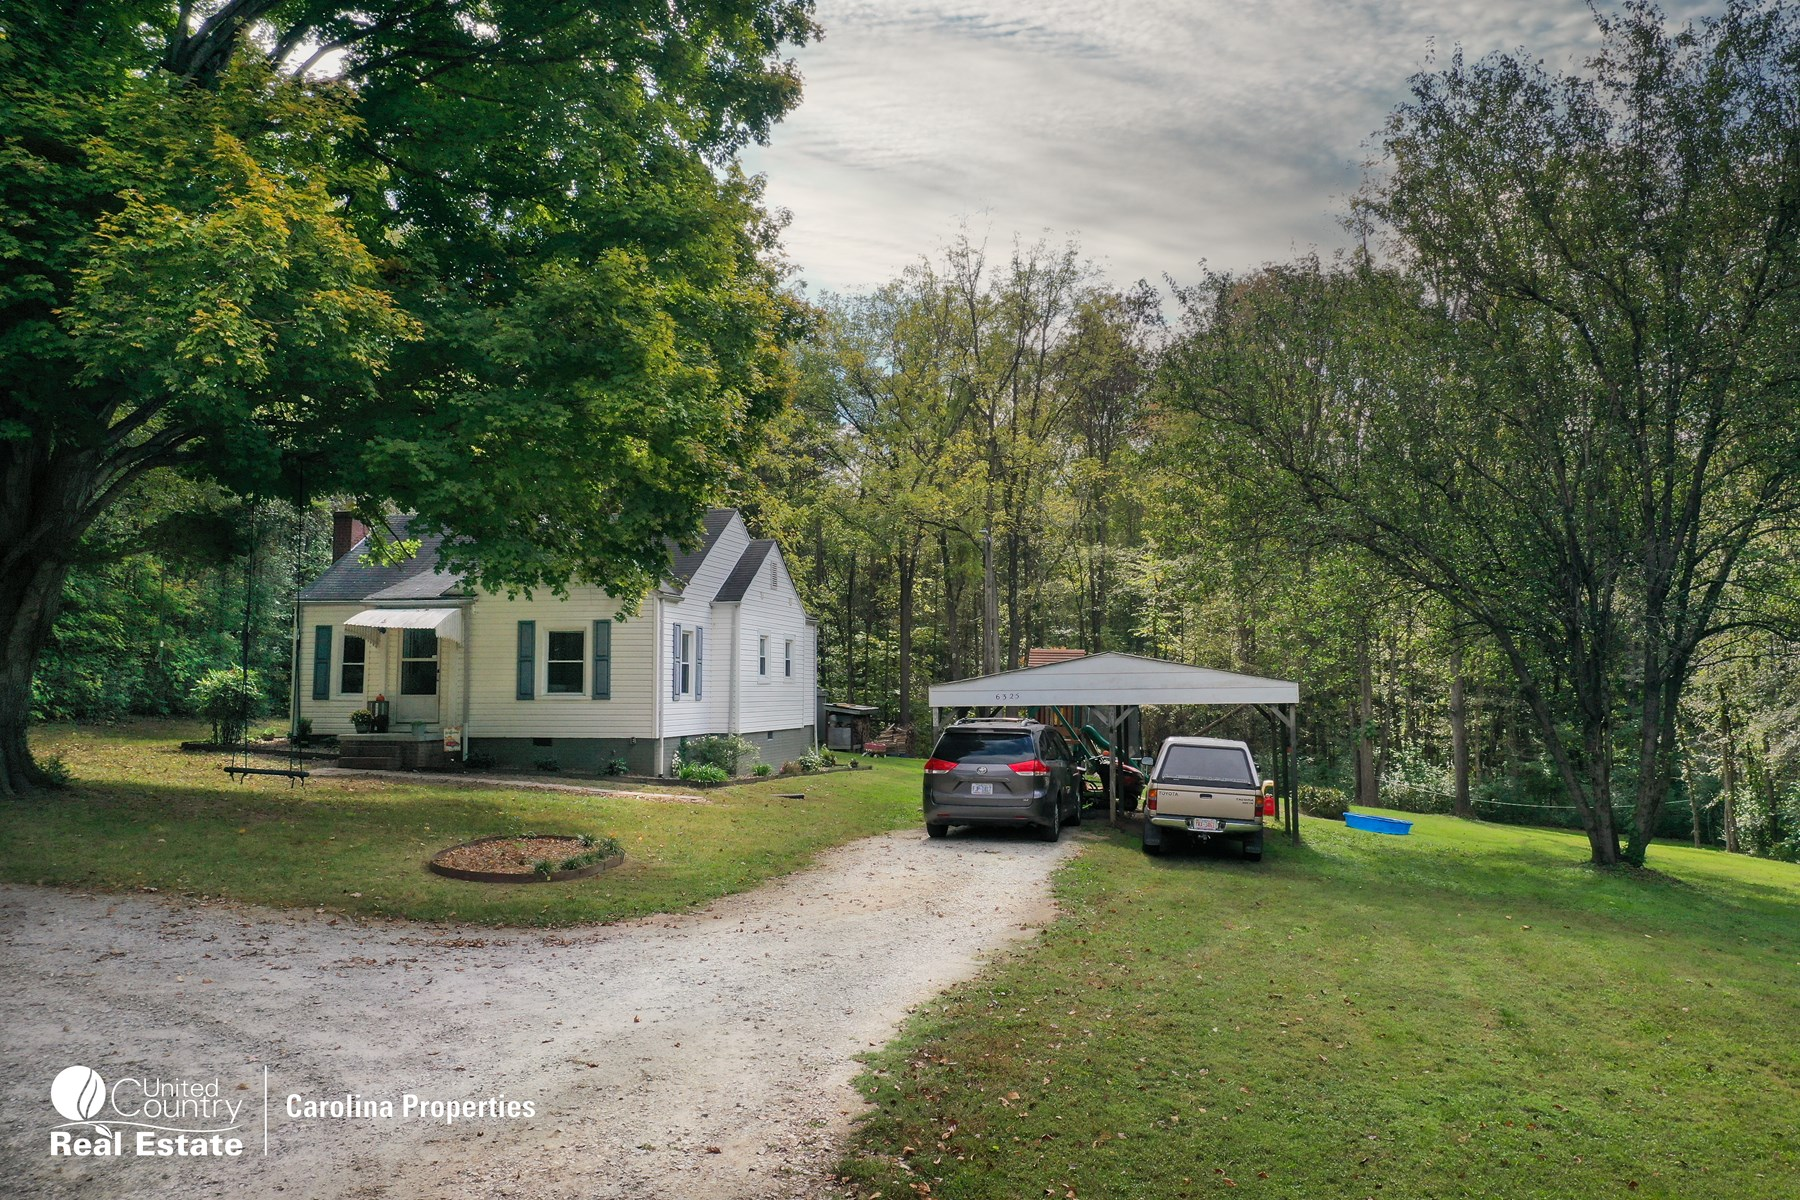 Country Home on Two Acres in West Rowan County NC